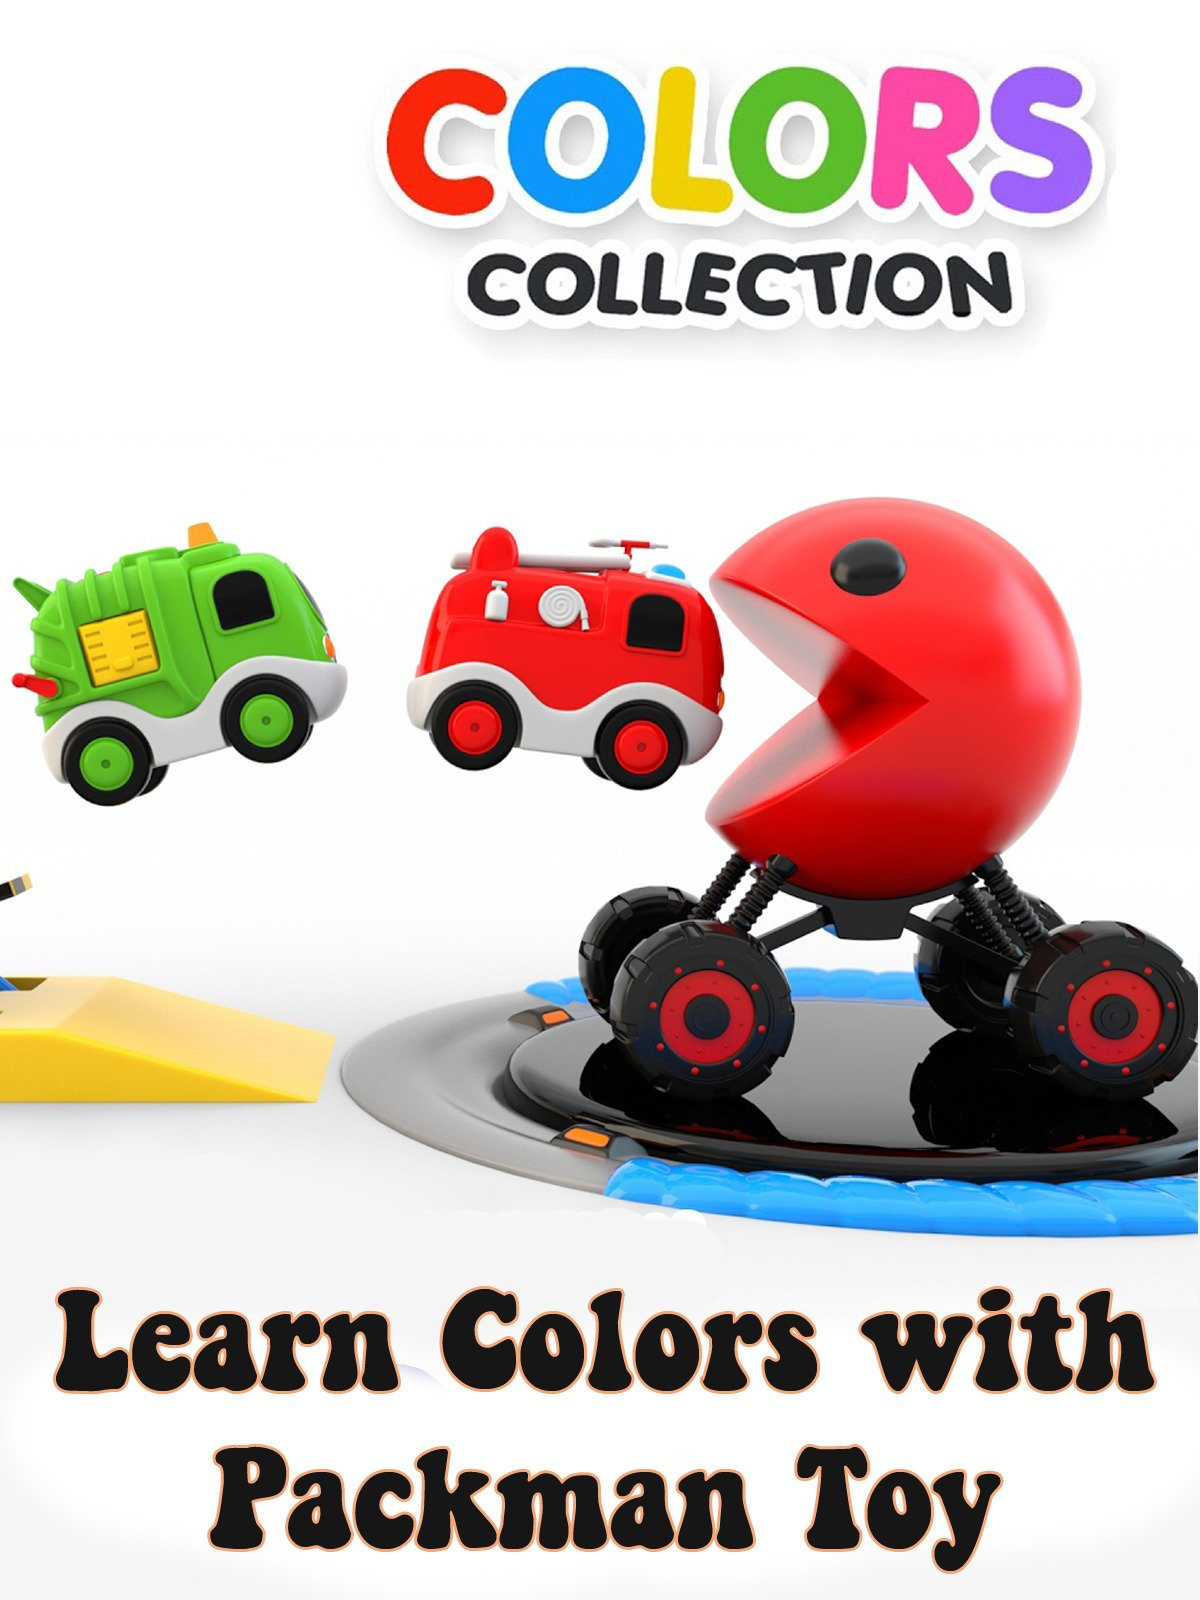 Learn Colors with Packman Toy